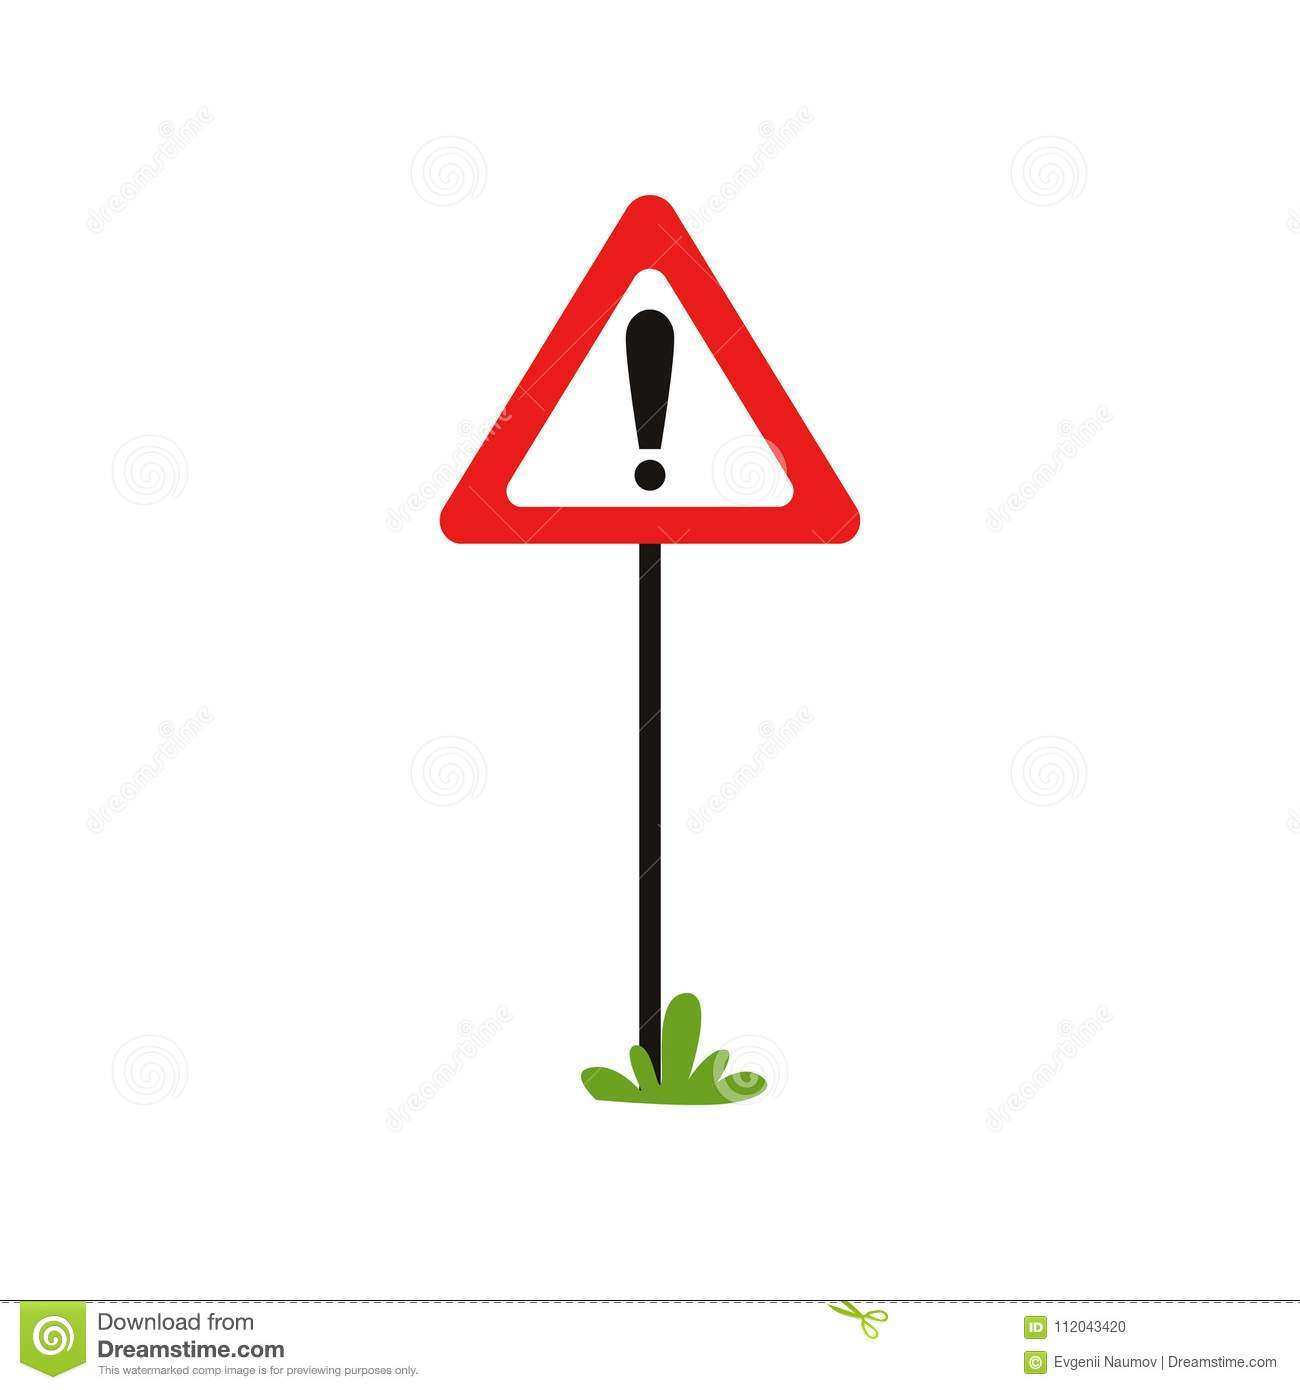 Triangular road sign with exclamation mark. Warning traffic sign indicates hazard ahead. Possible danger. Flat vector